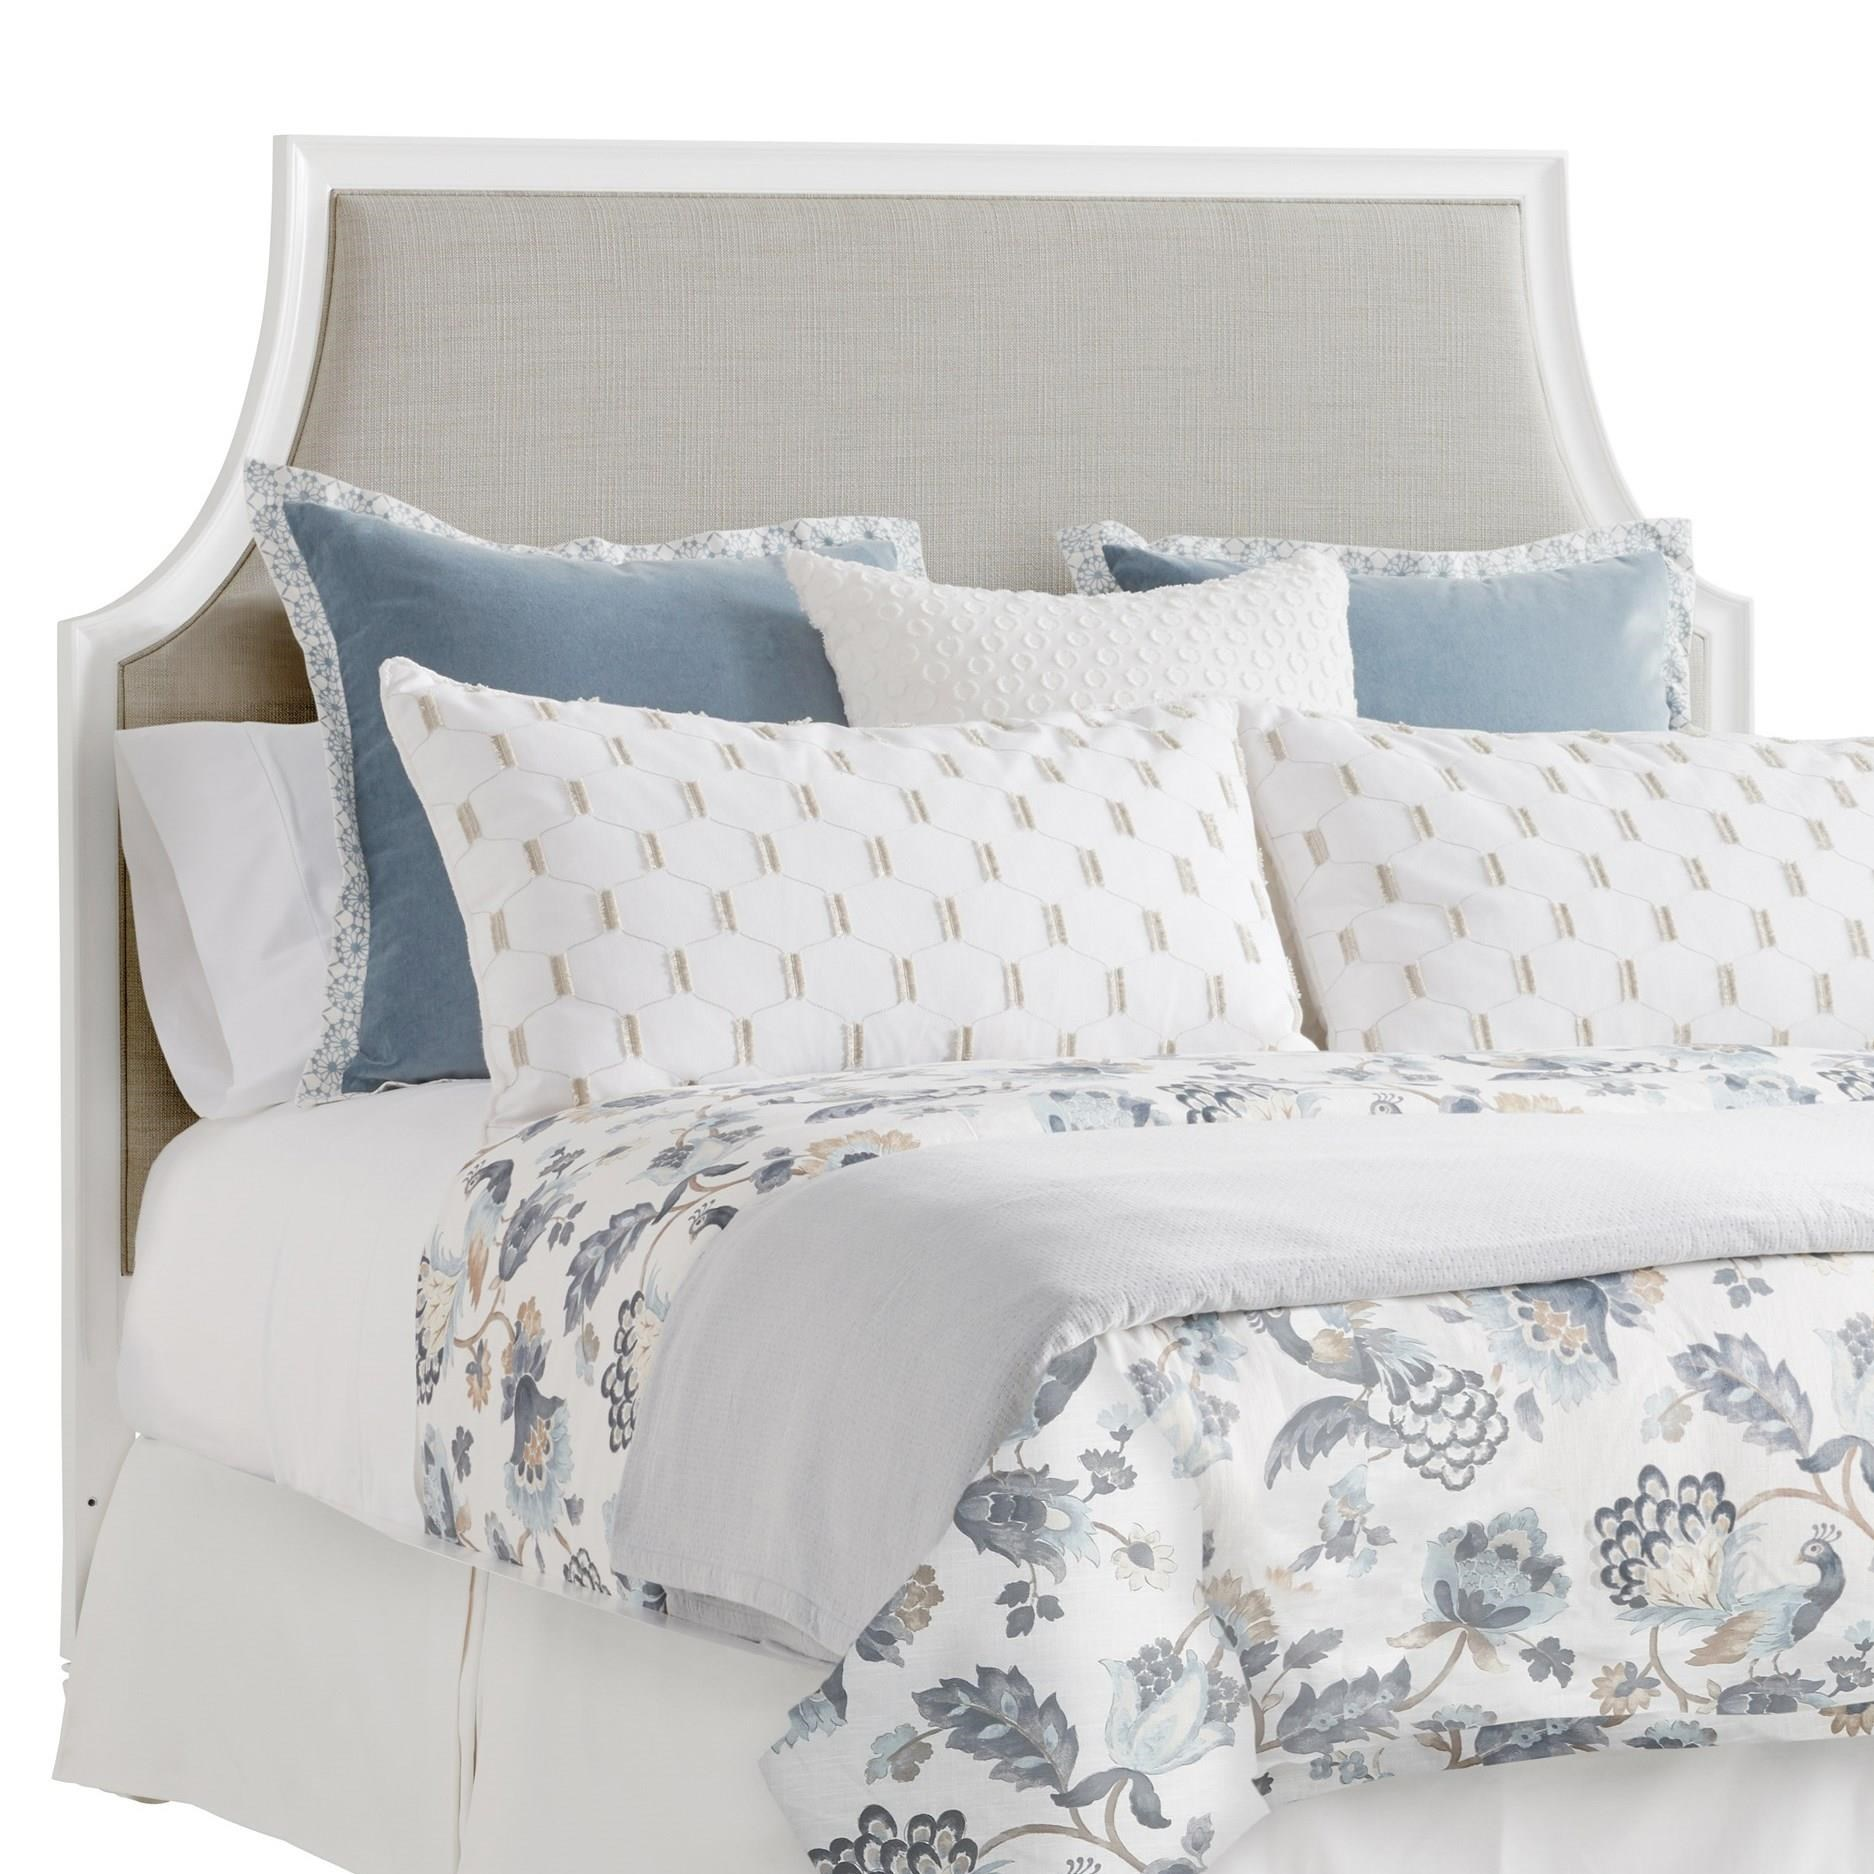 Avondale Inverness Upholstered Headboard 5/0 Queen by Lexington at Johnny Janosik